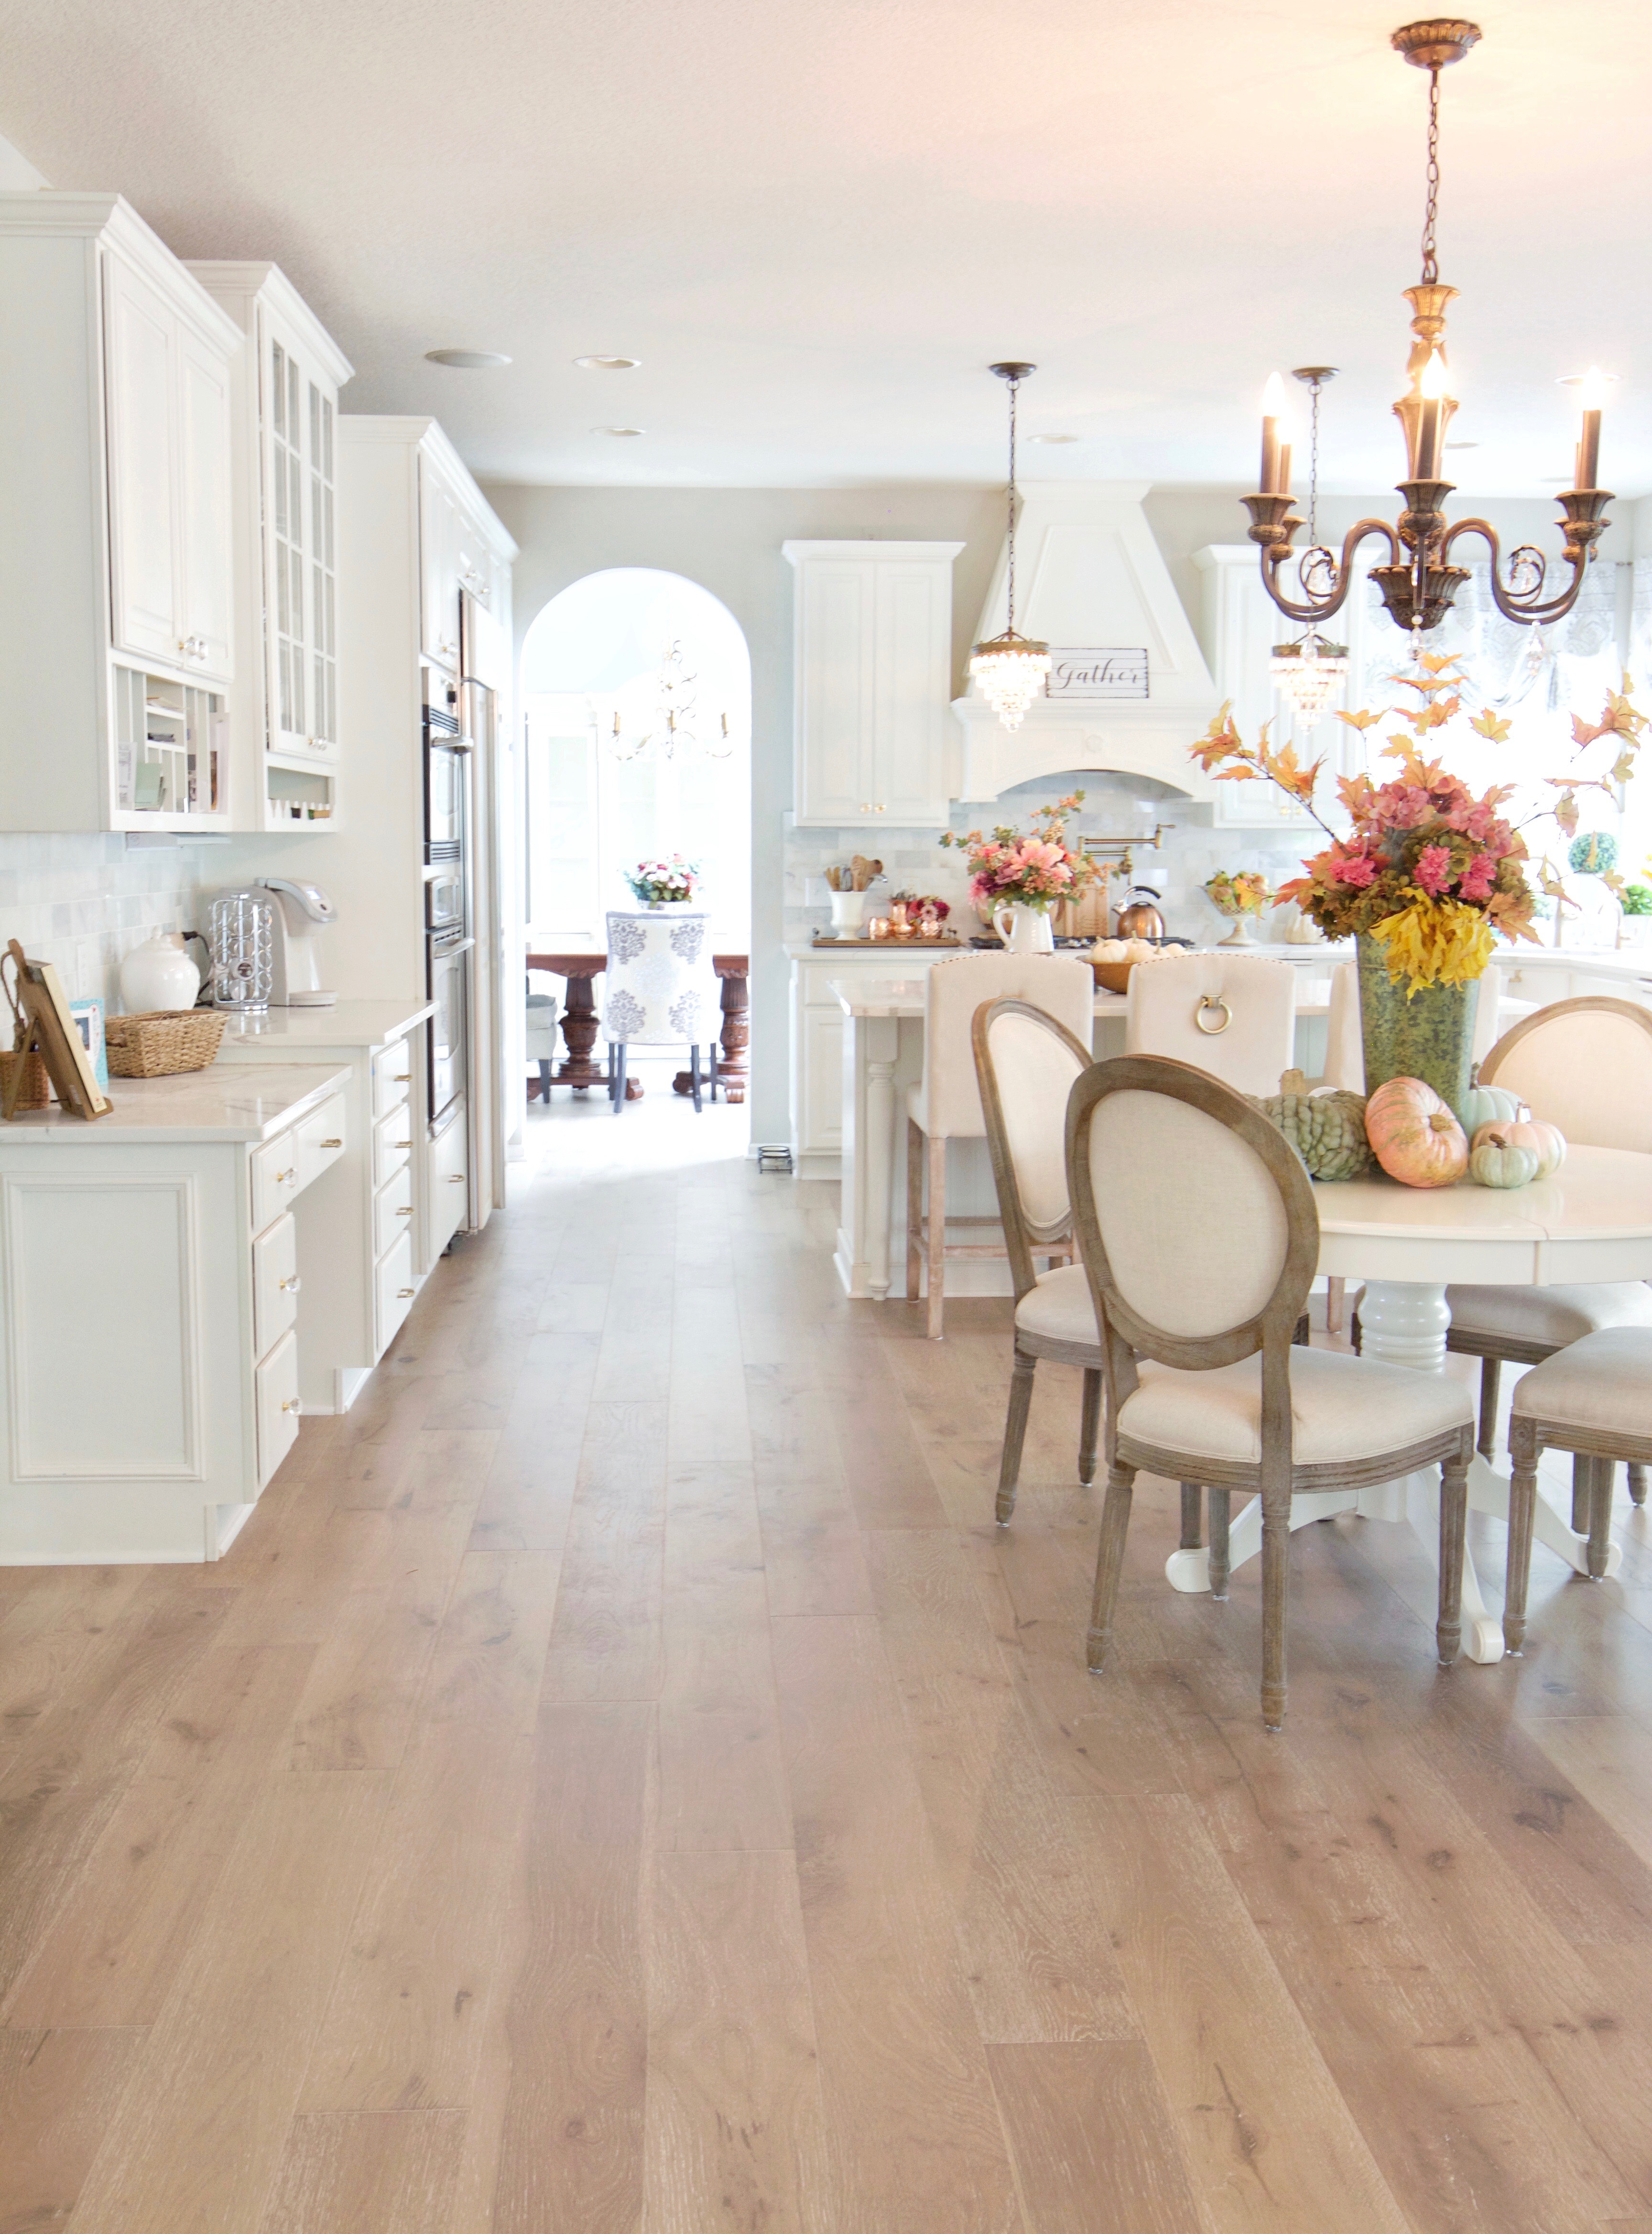 New Wood Flooring Reveal in the Kitchen and Sunroom   Styled With Lace